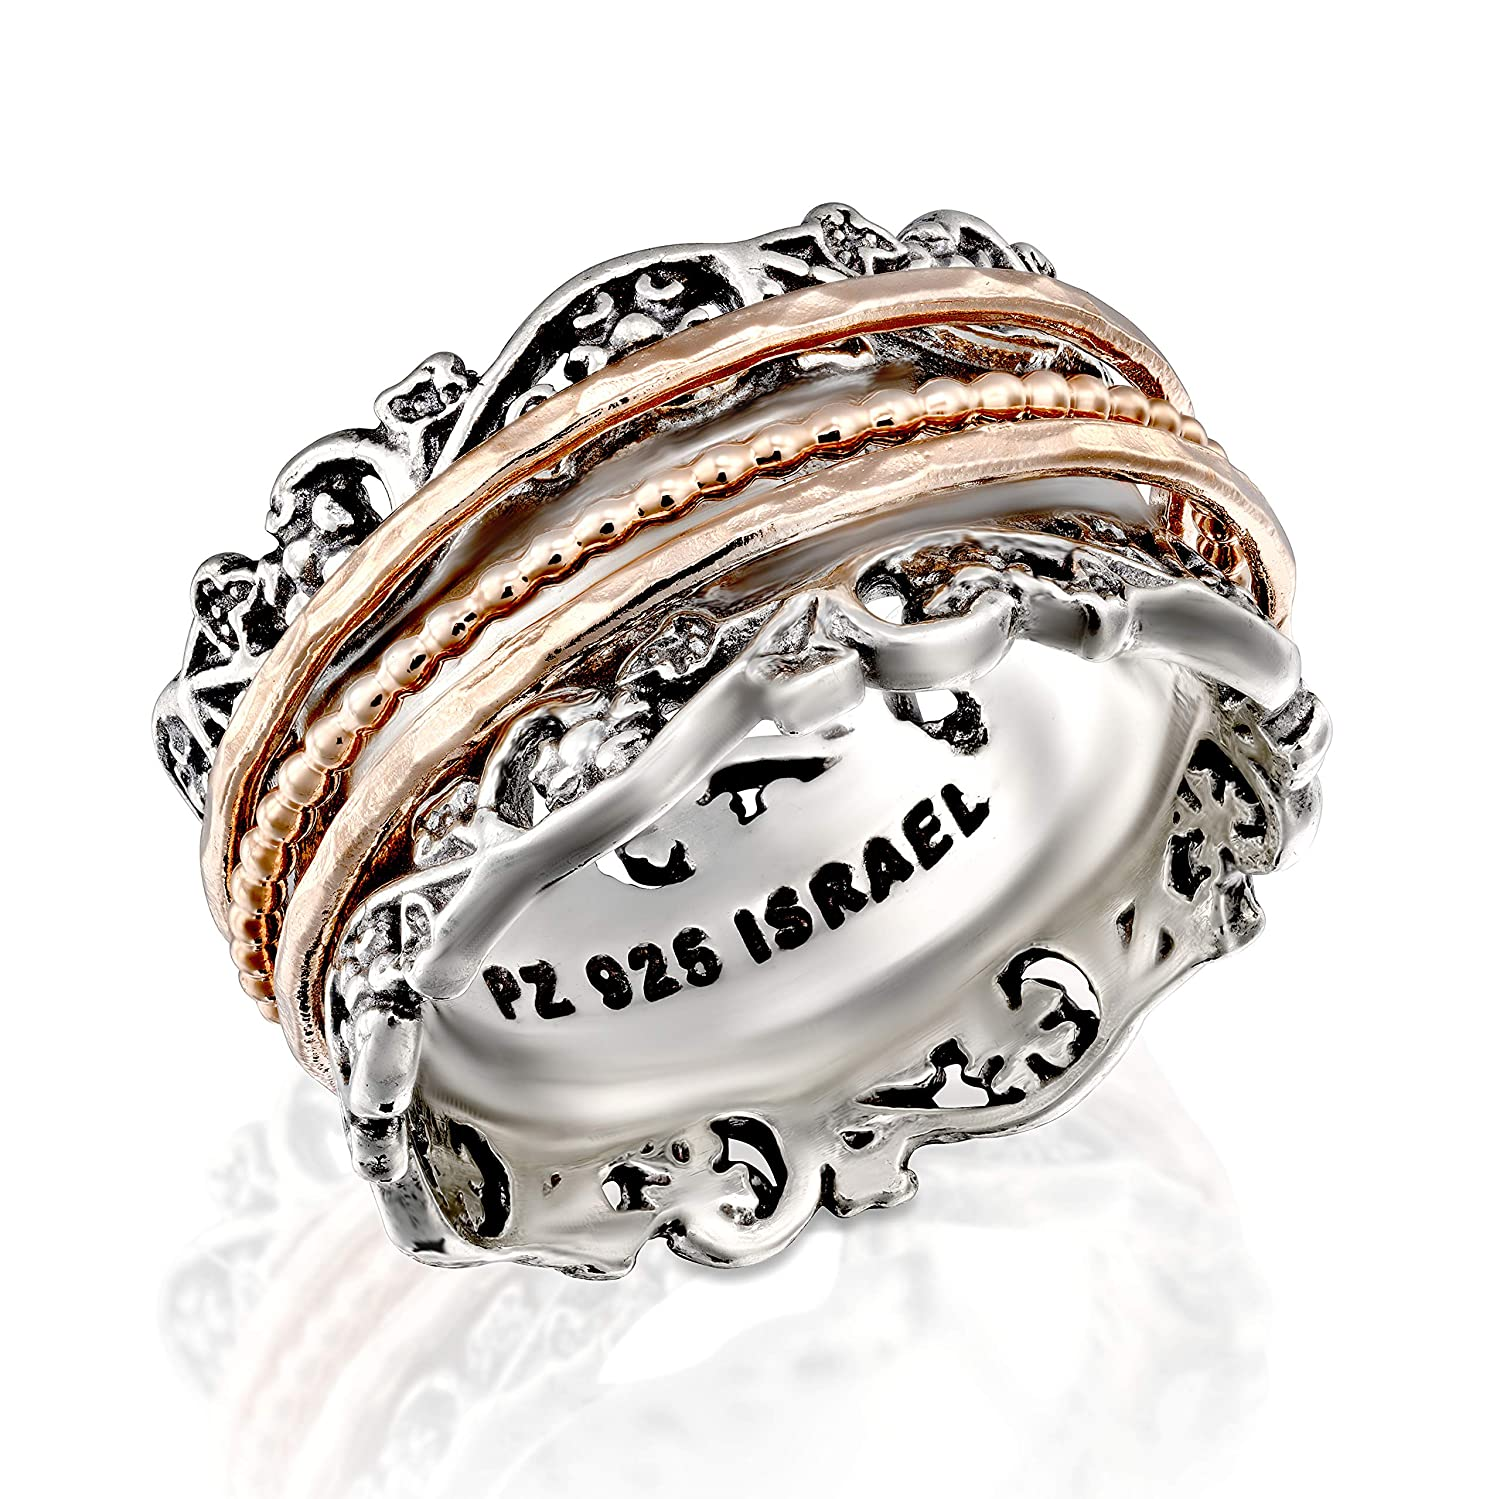 5045aef62a9be PZ Paz Creations .925 Sterling Silver and Rose Gold Over Silver Spinner Ring